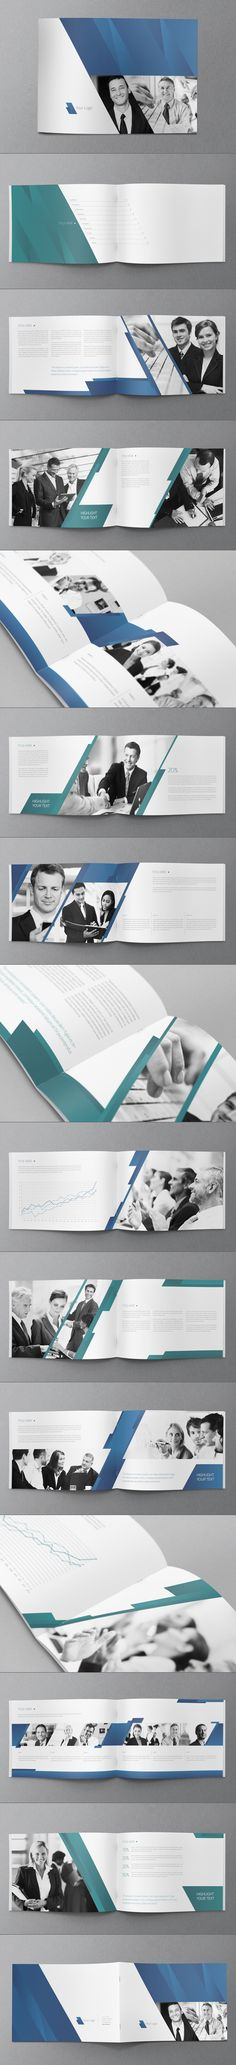 Business Brochure Design by Abra Design